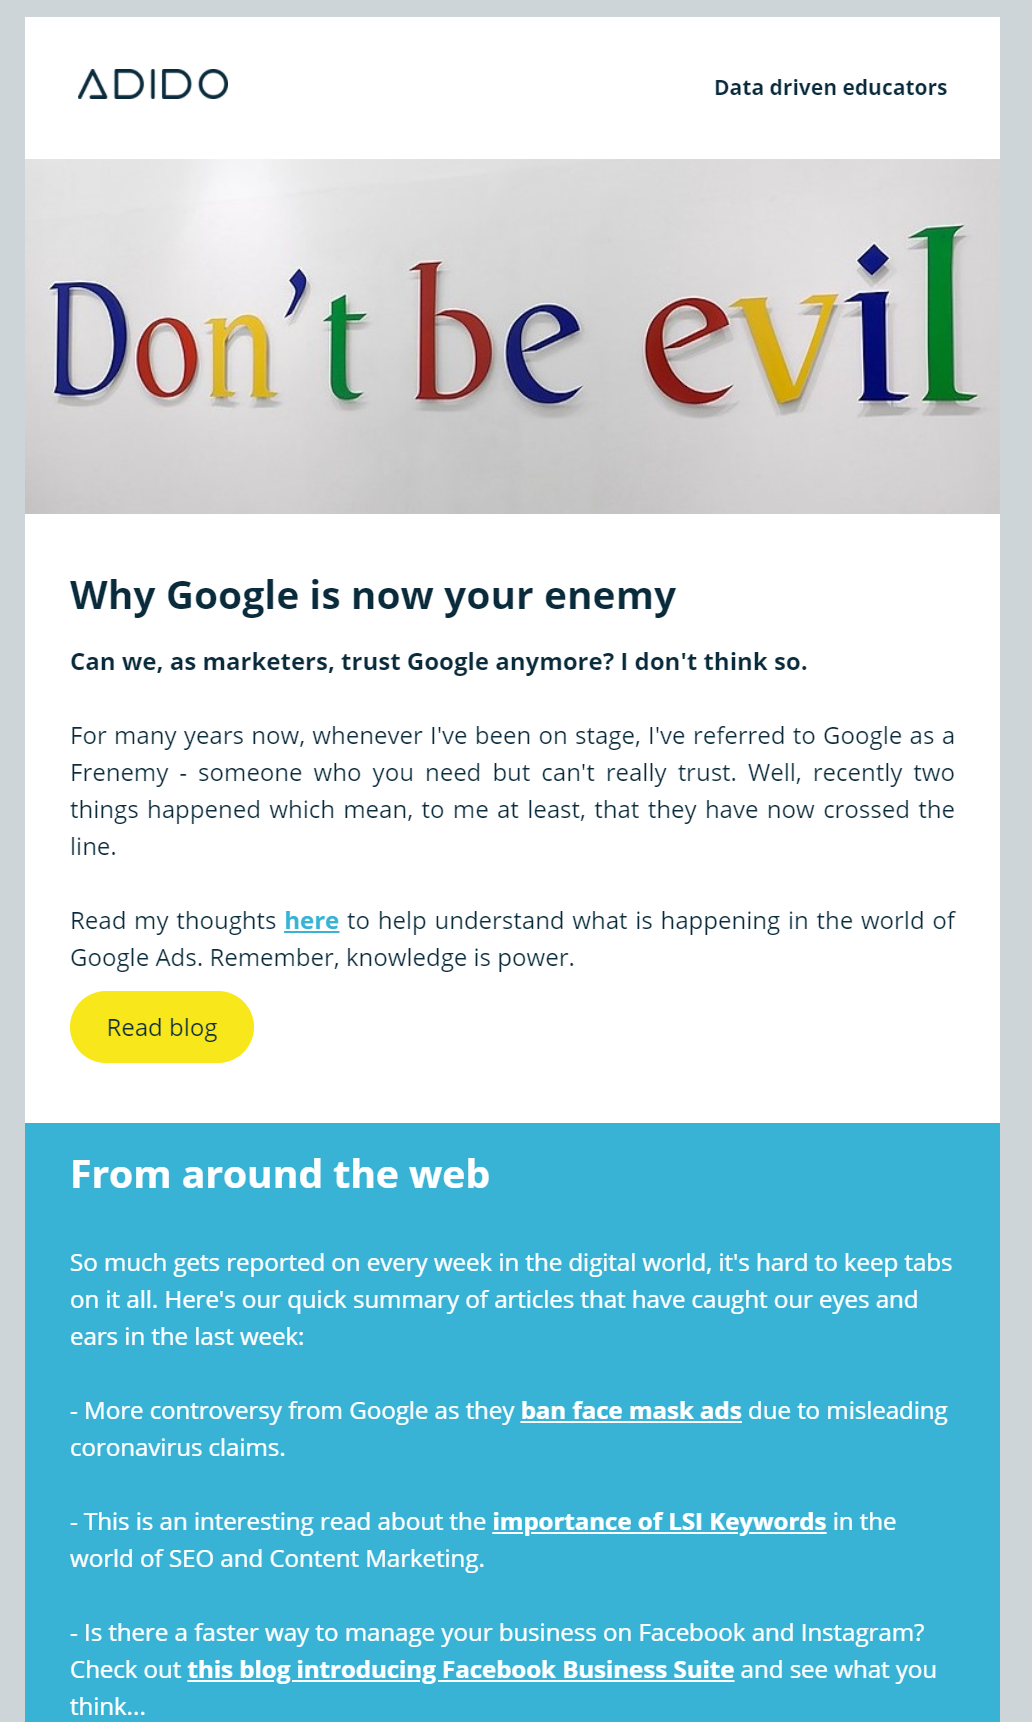 Google is your enemy newsletter image